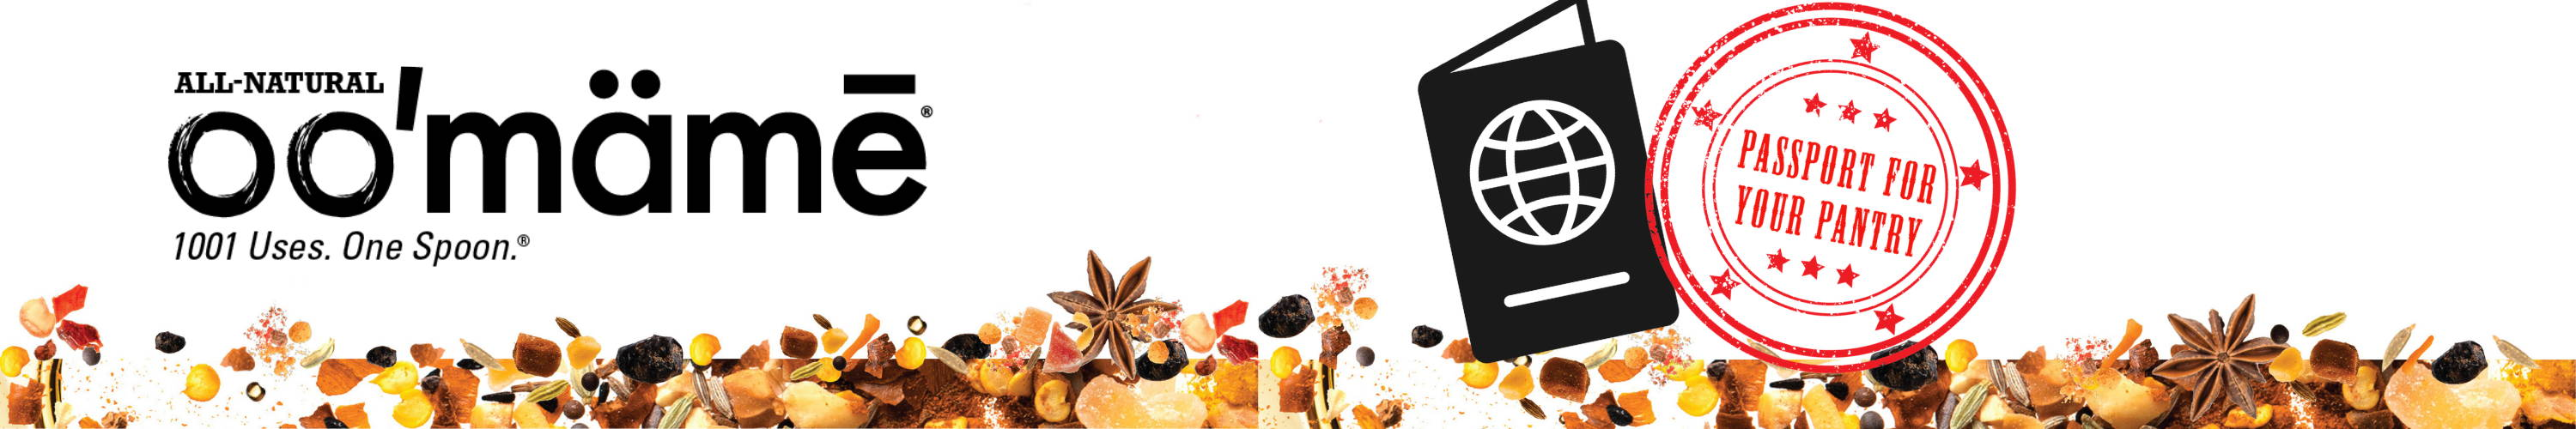 Explosion of spices, seeds, fruits, nuts, black beans and all the other components that make up the oo'mämē chile crisp, with the oo'mämē logo. Passport for your Pantry logo includes a passport icon and stamp saying Passport for your pantry.